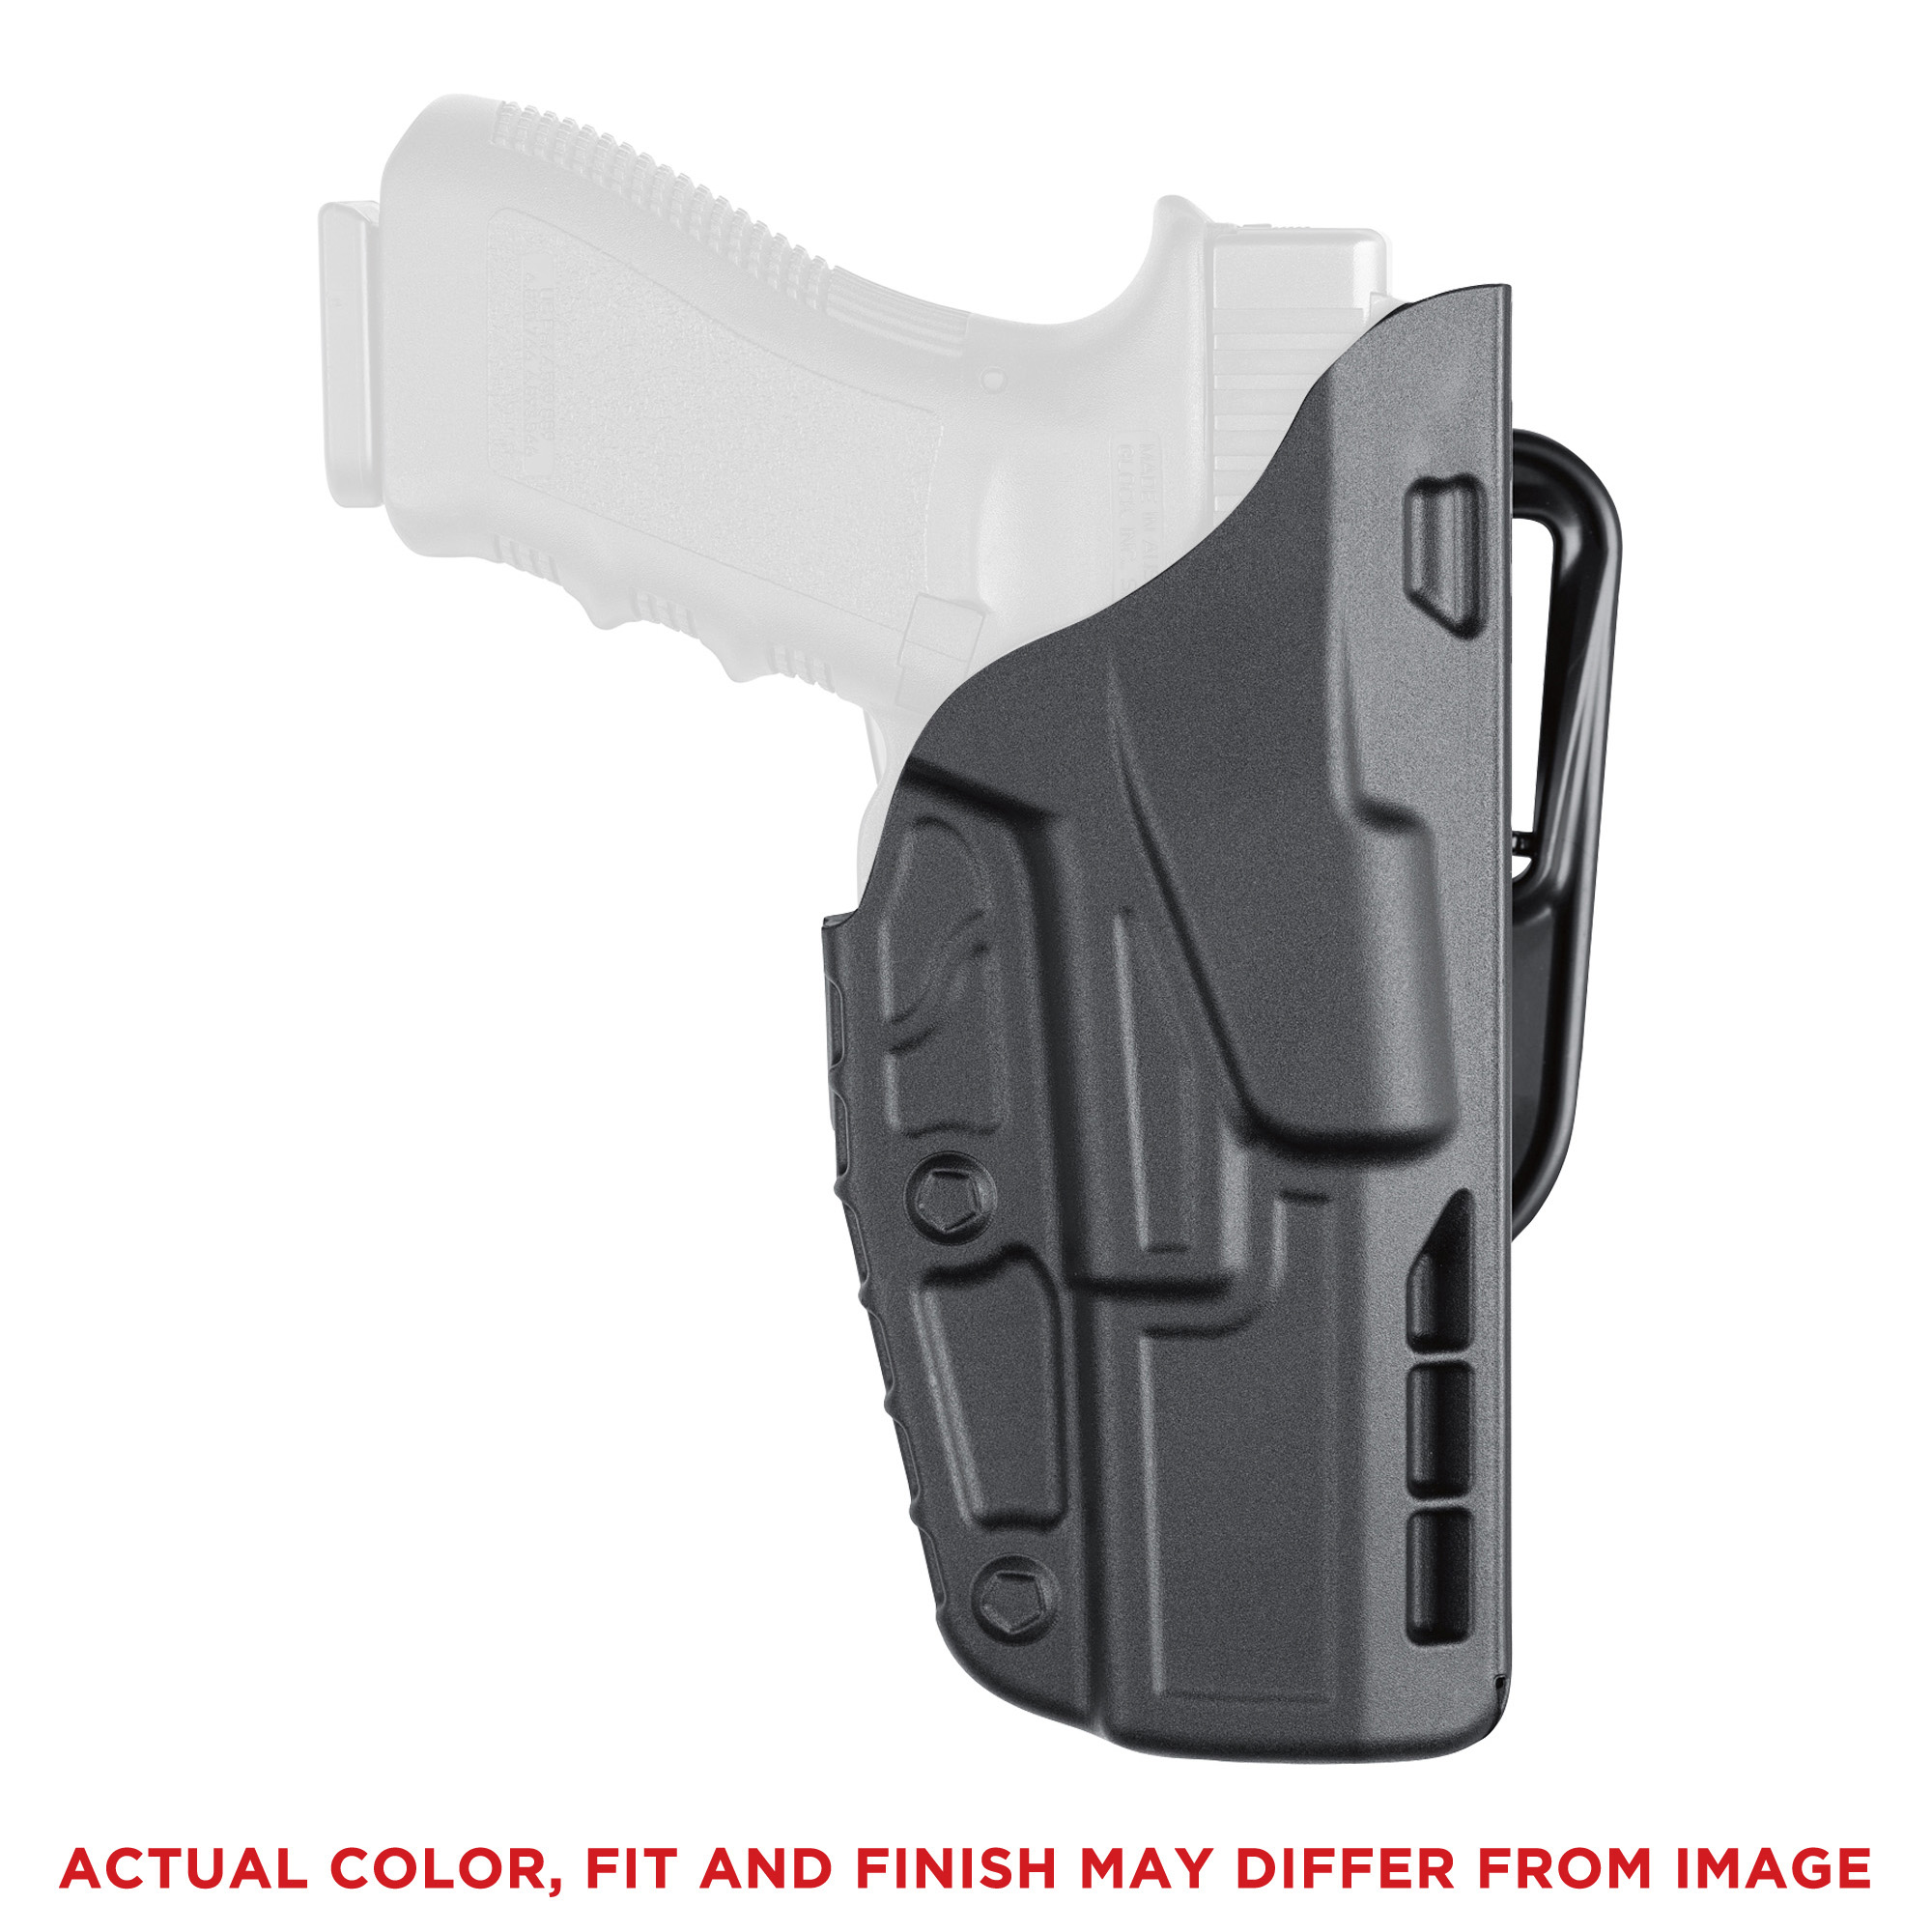 """This concealment belt slide holster with ALS(R) (Automatic Locking System) secures weapon once holstered. Simple straight up draw once release is deactivated. Open-top design without SLS for quick retrieval of weapon. Constructed of SafariSeven(TM)"""" a proprietary nylon blend that is completely non-abrasive to a firearm's finish."""